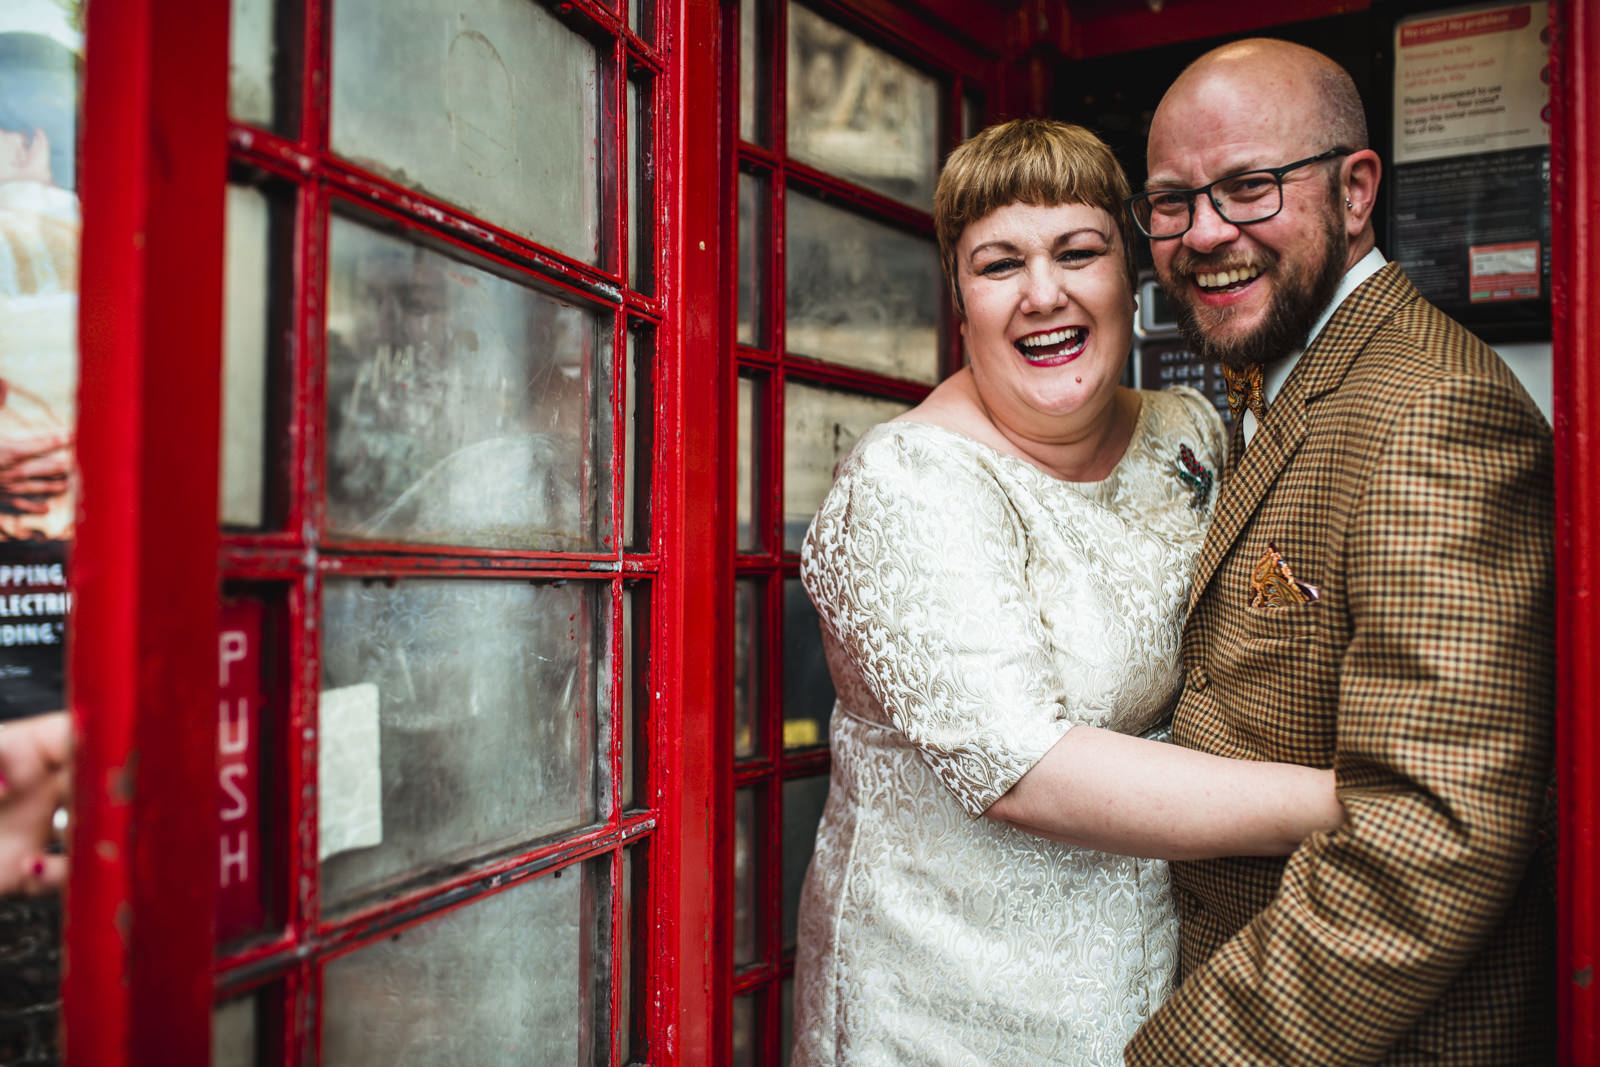 Red telephone box wedding portraits with bride and groom. Outside York Minster.